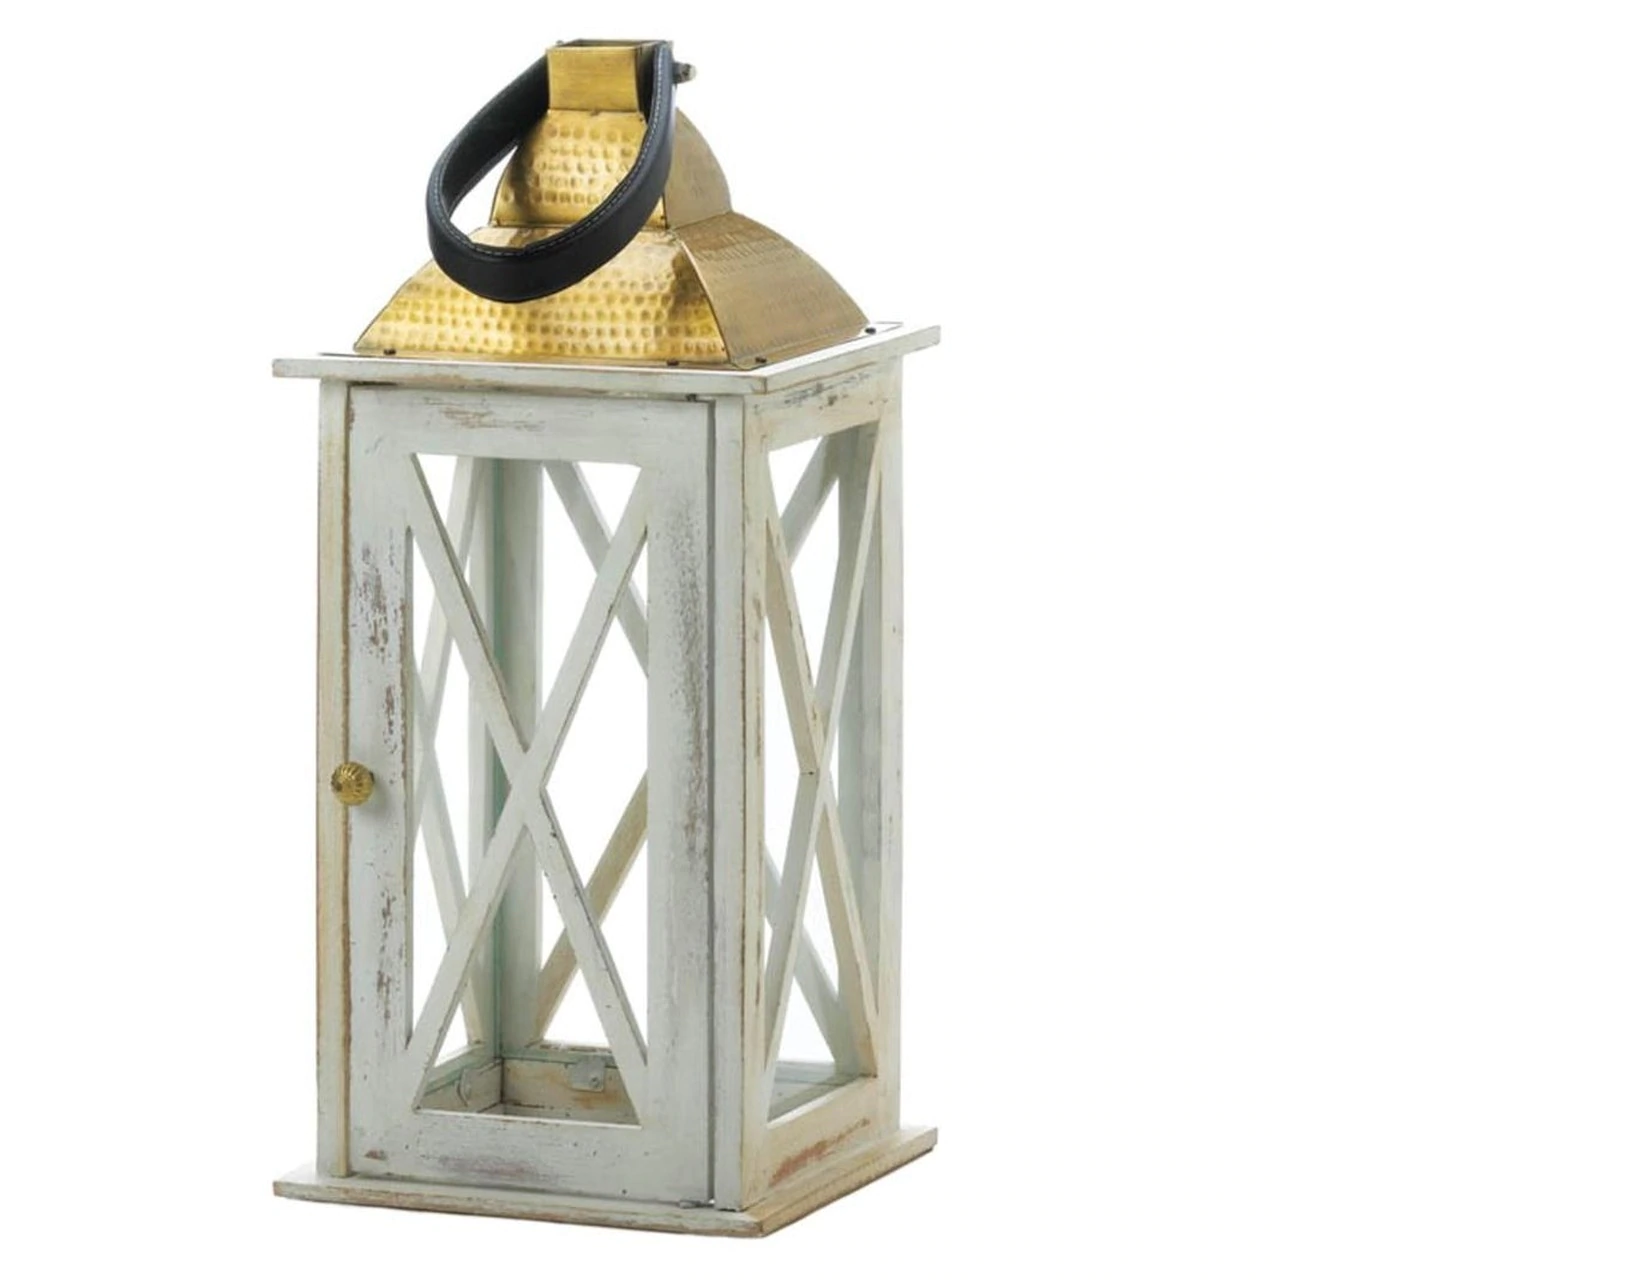 Distressed White Wood Candle Lantern with Gold Top - 19 inches